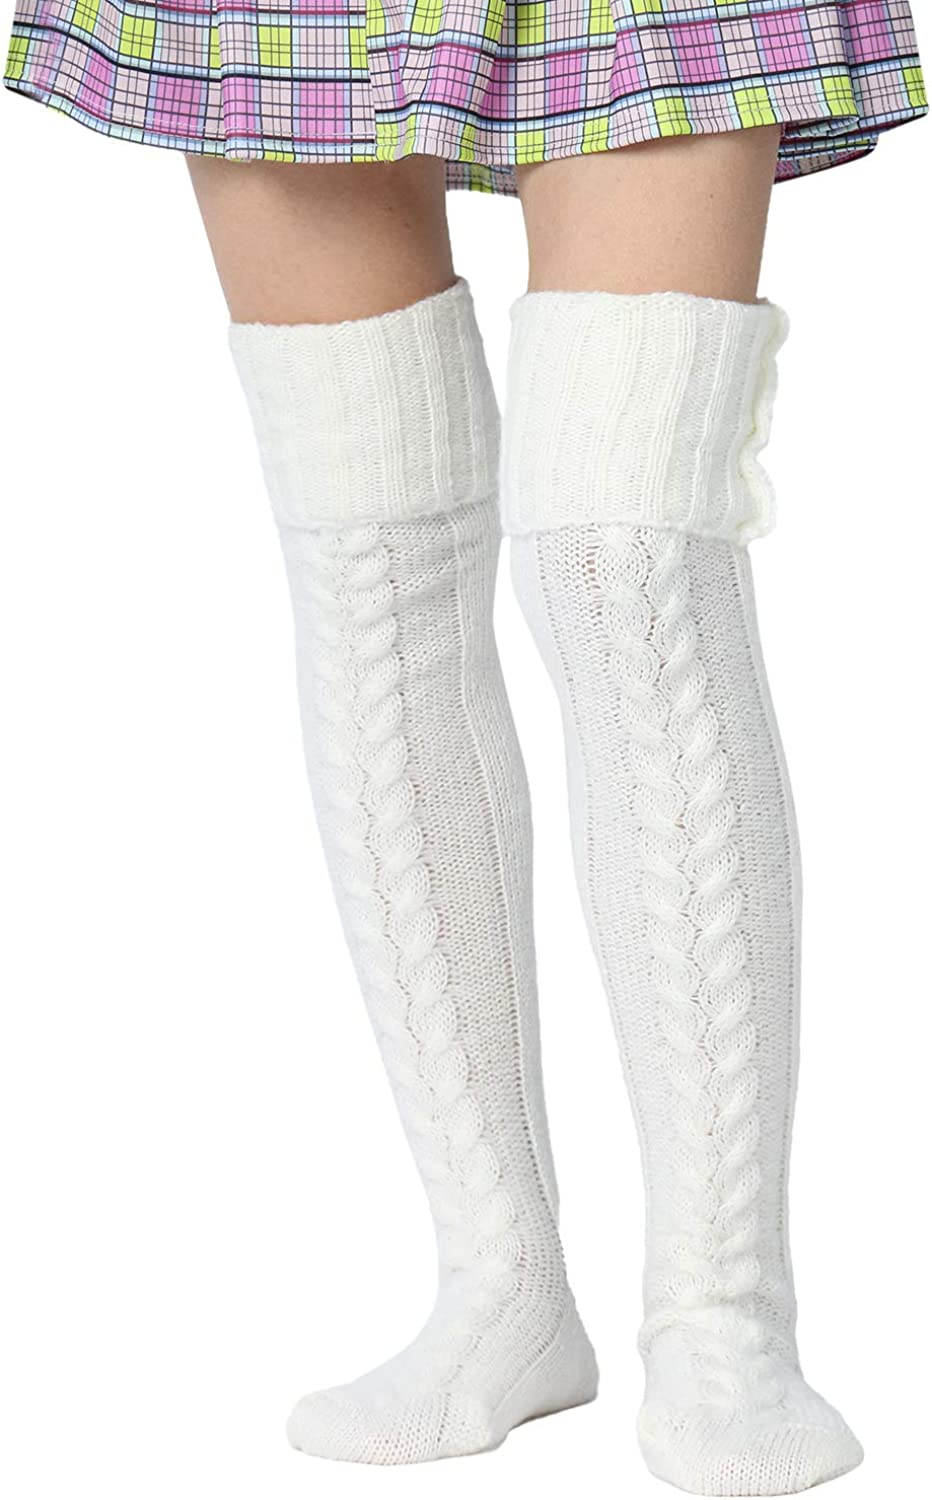 Women Knit Long Socks Cable Knit Thigh Over Knee High Boot Leg Tube Stockings Leg Warmers